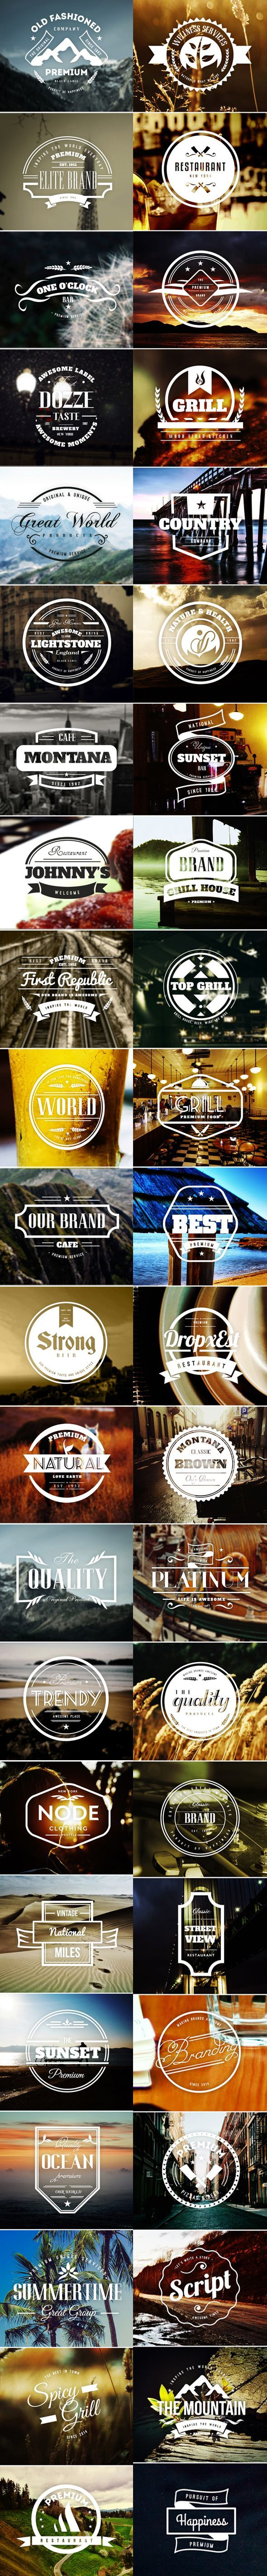 Best 25 Badge logo ideas on Pinterest